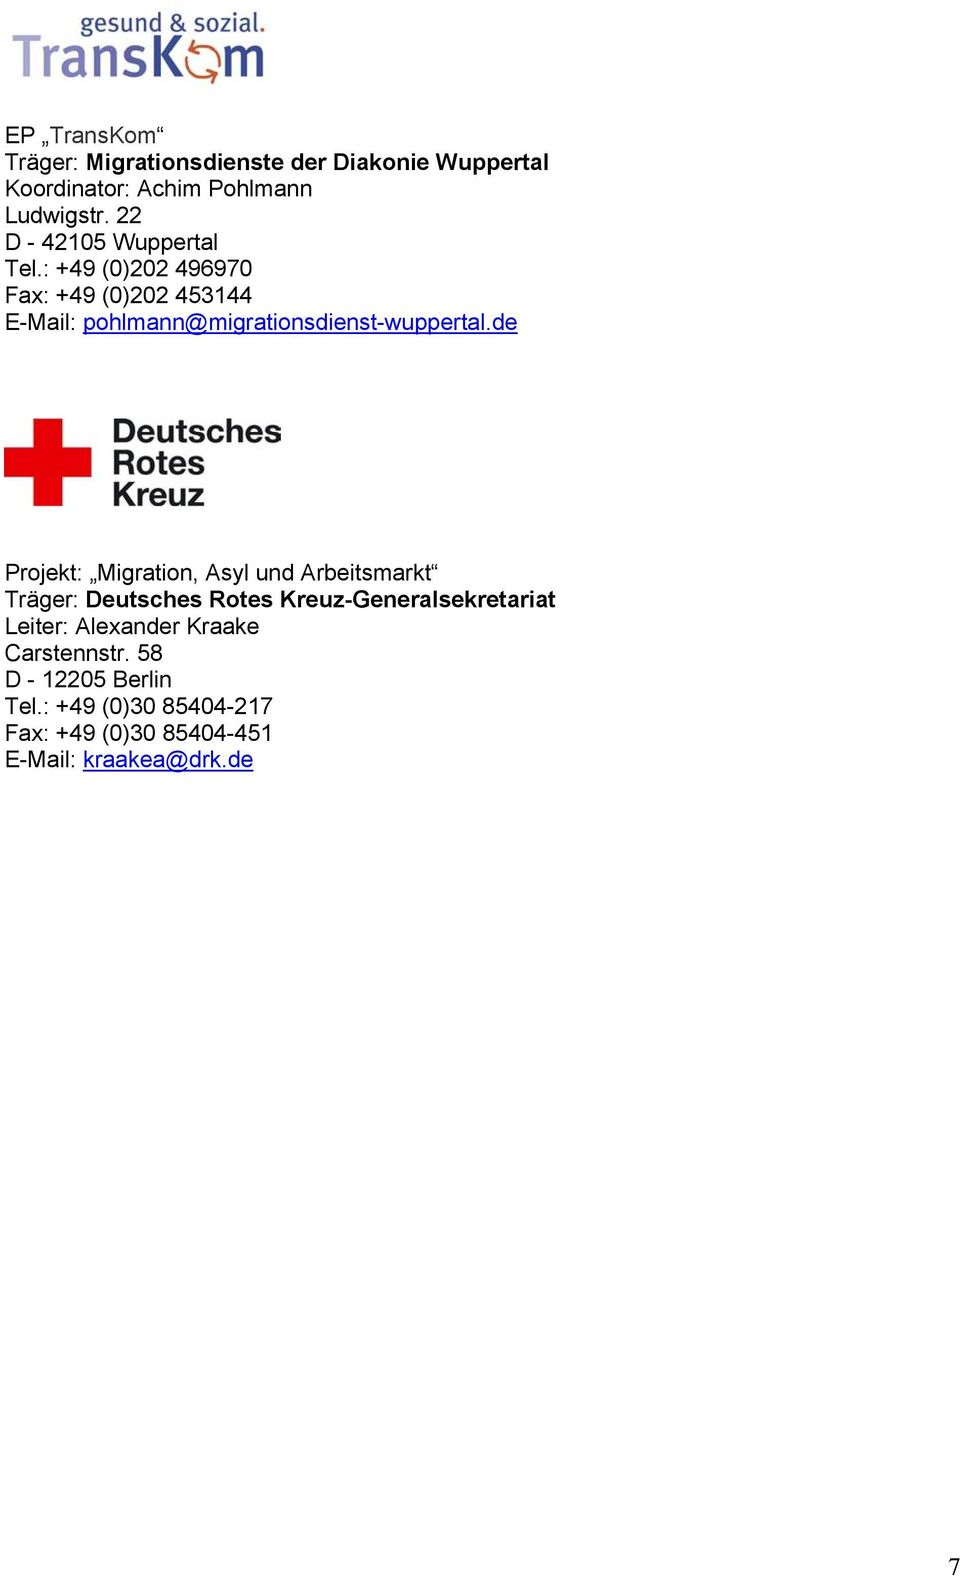 : +49 (0)202 496970 Fax: +49 (0)202 453144 E-Mail: pohlmann@migrationsdienst-wuppertal.